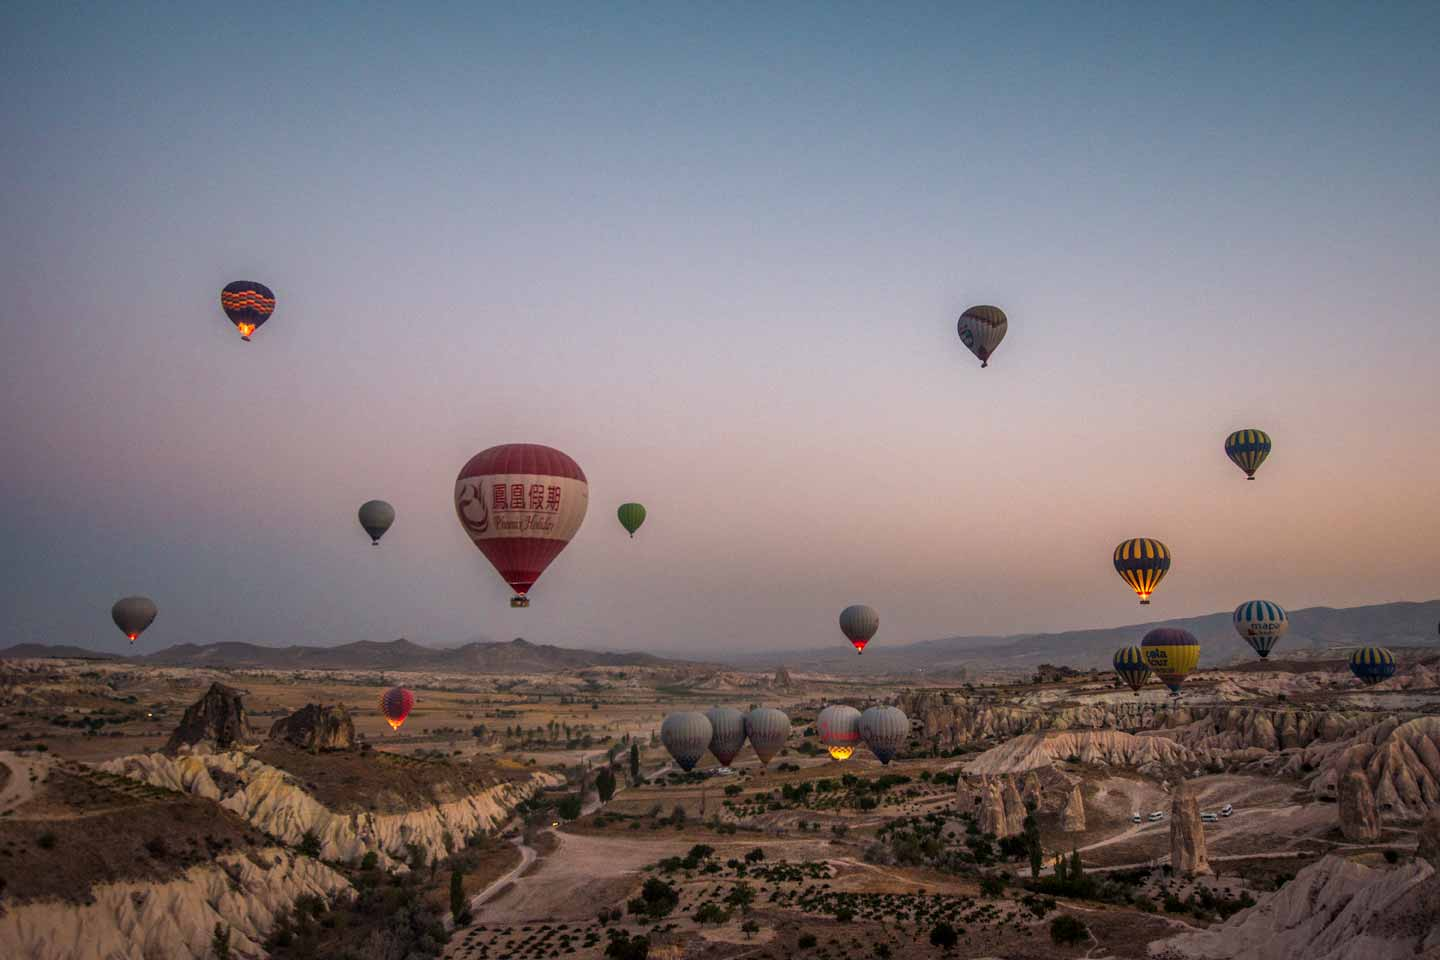 cappadocia hot air balloons take off